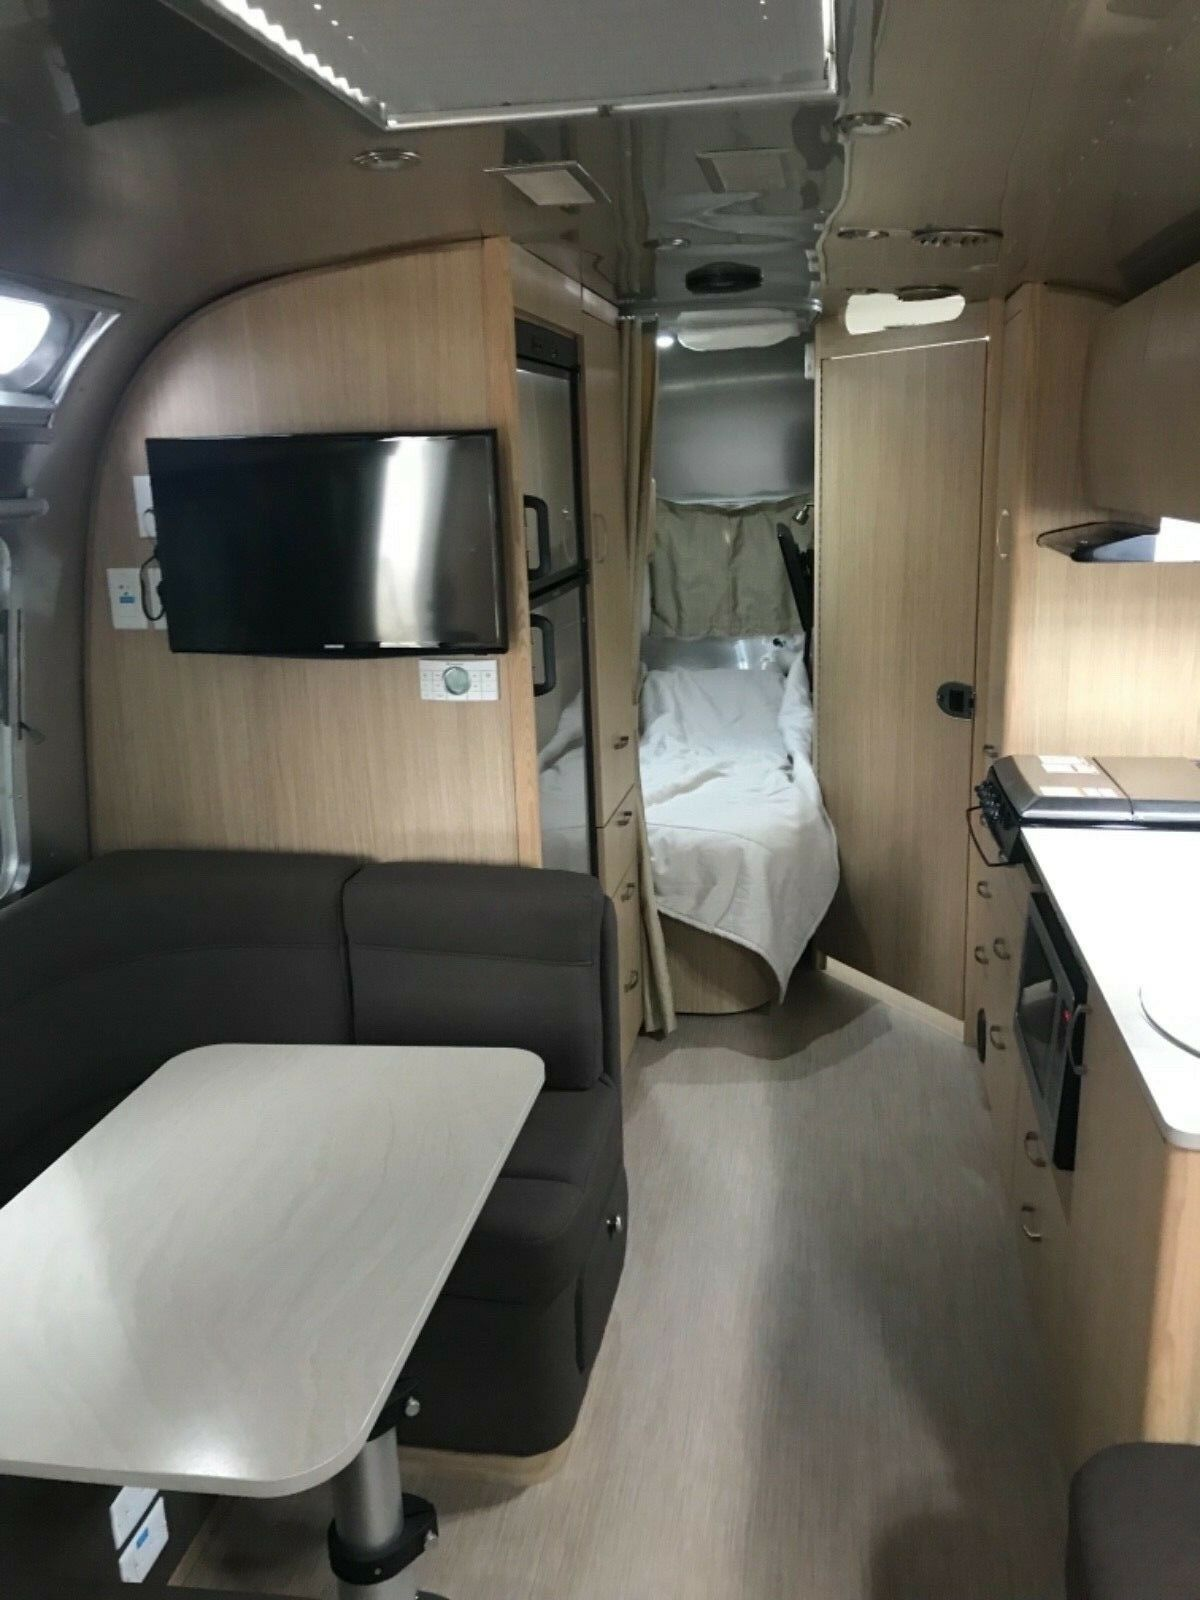 tony of accessories 2017 Airstream Flying Cloud 30 FB Bunk camper